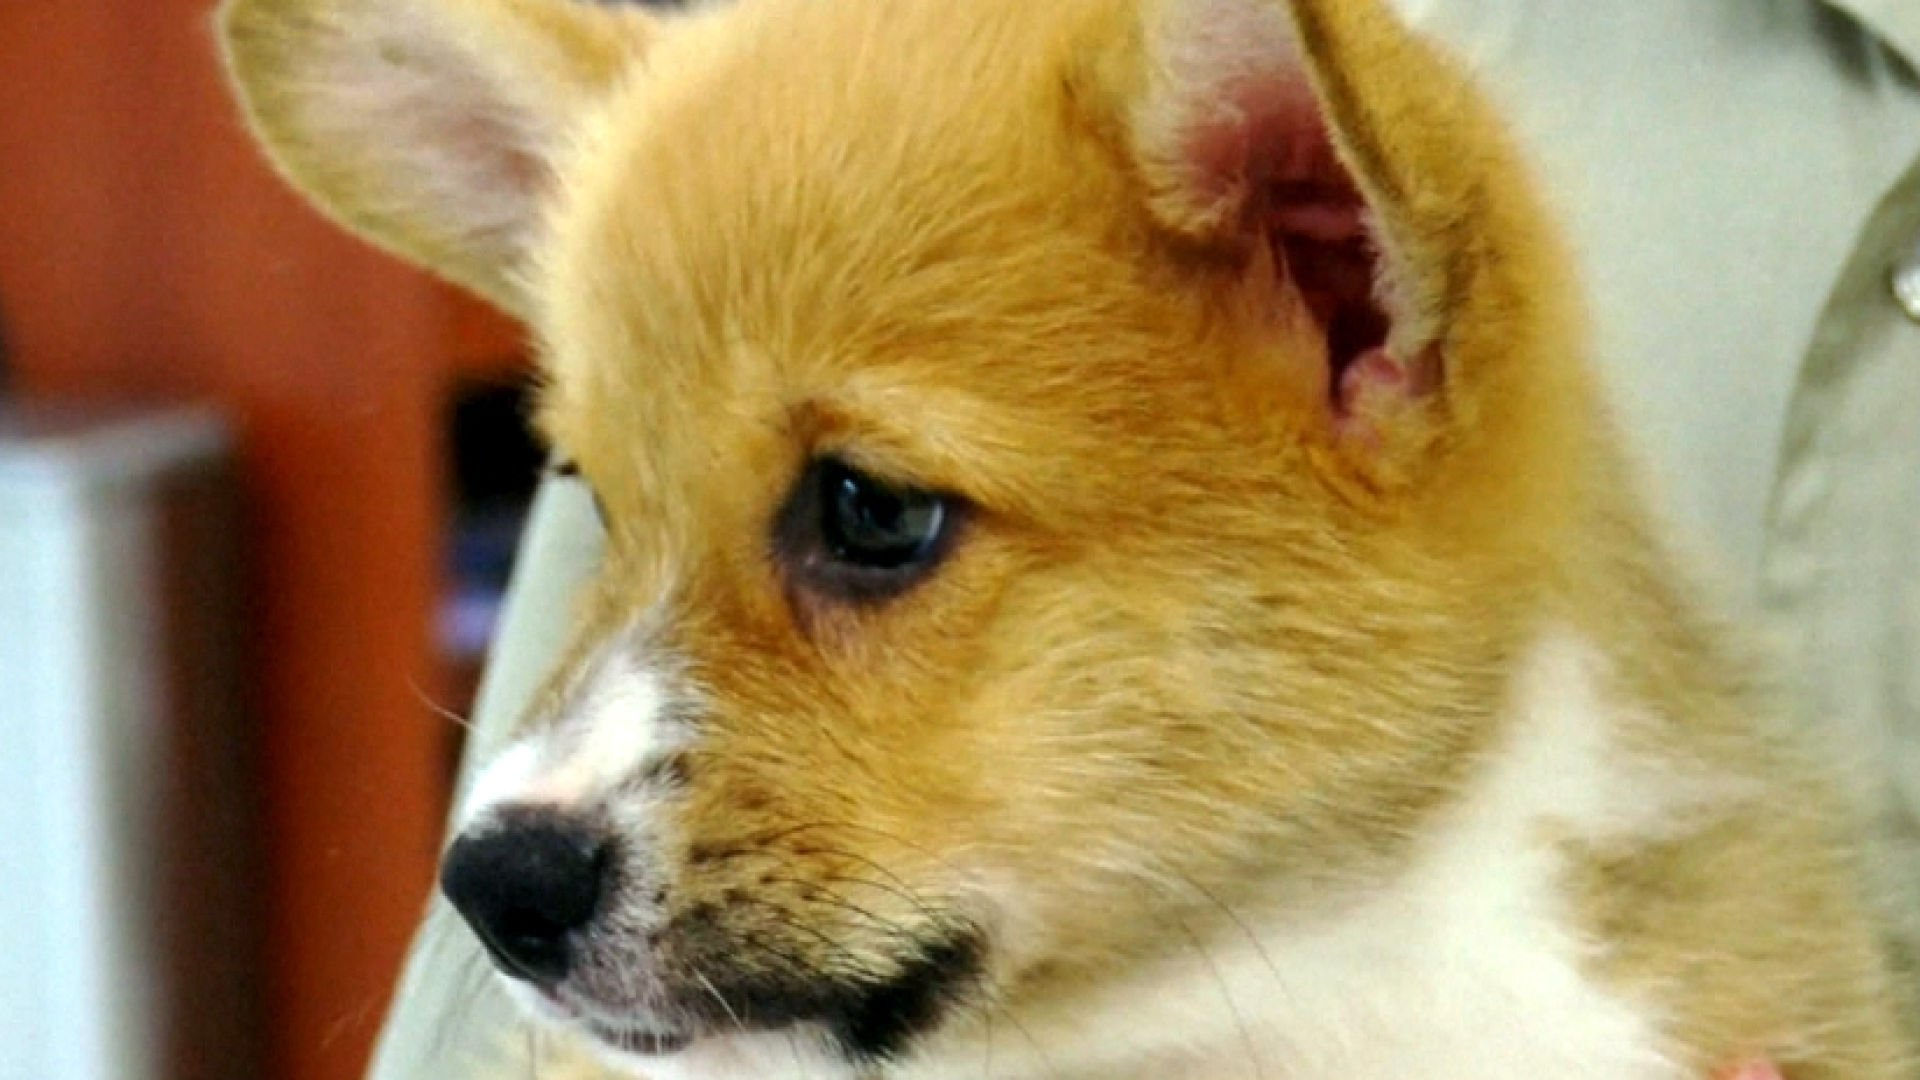 The Centers for Disease Control and Prevention is investigating a multistate outbreak of infections linked to contact with puppies sold through Petland, a national pet store chain.